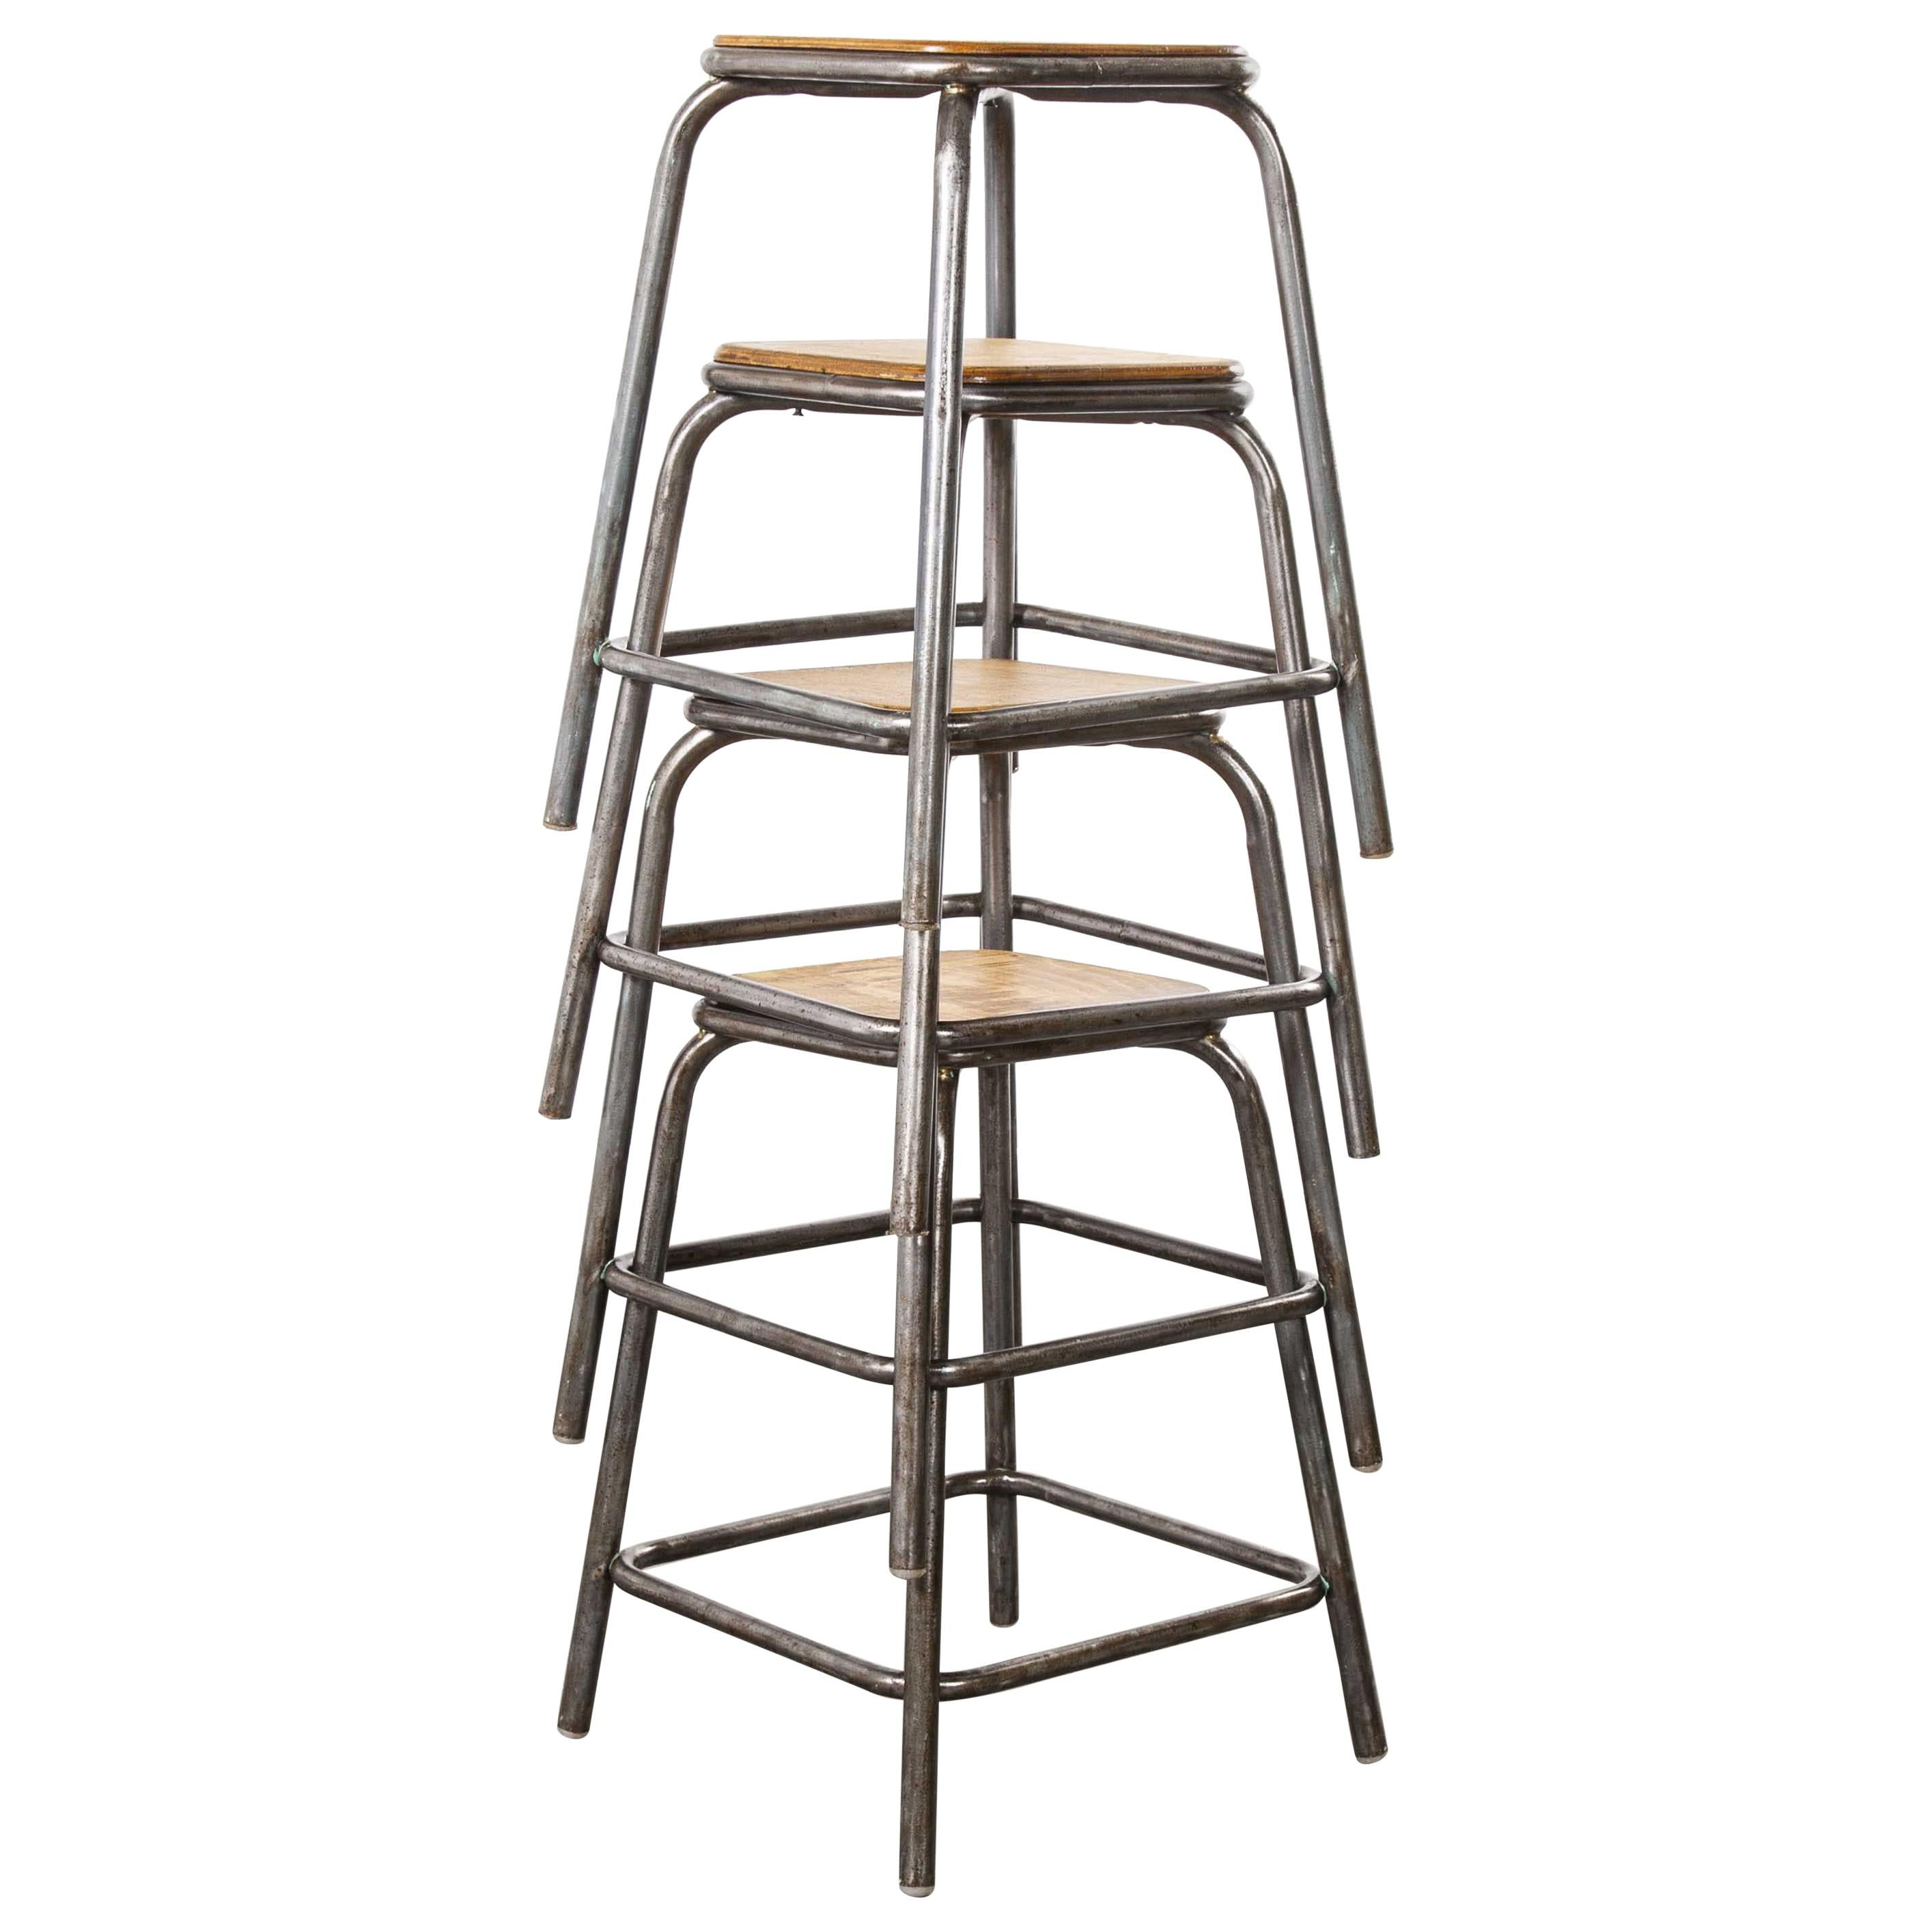 1950s Vintage Mullca Industrial French Stacking High Stools, Set of Four